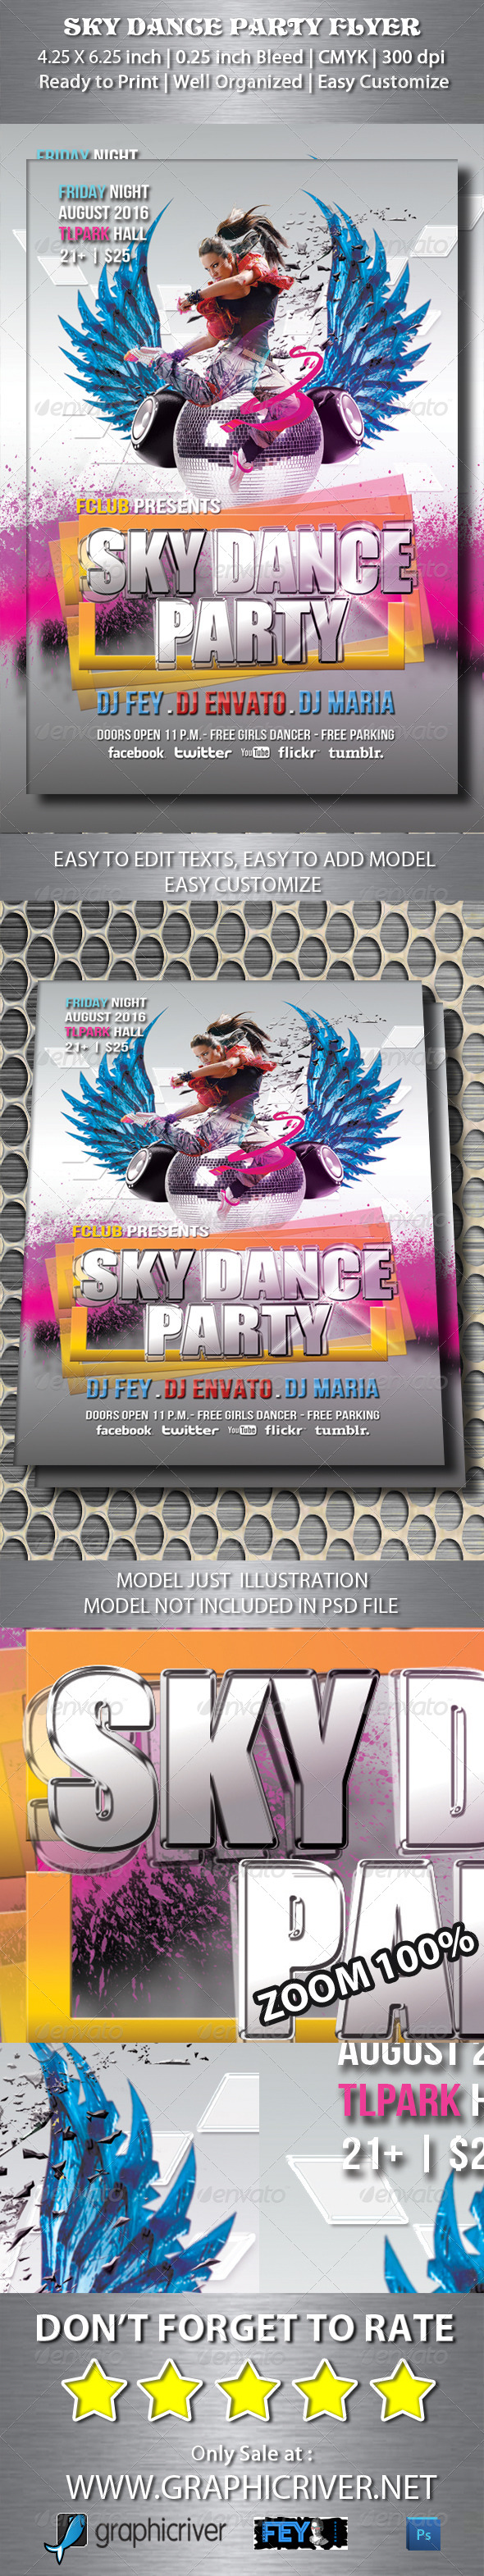 GraphicRiver Sky Dance Party Flyer 5352592